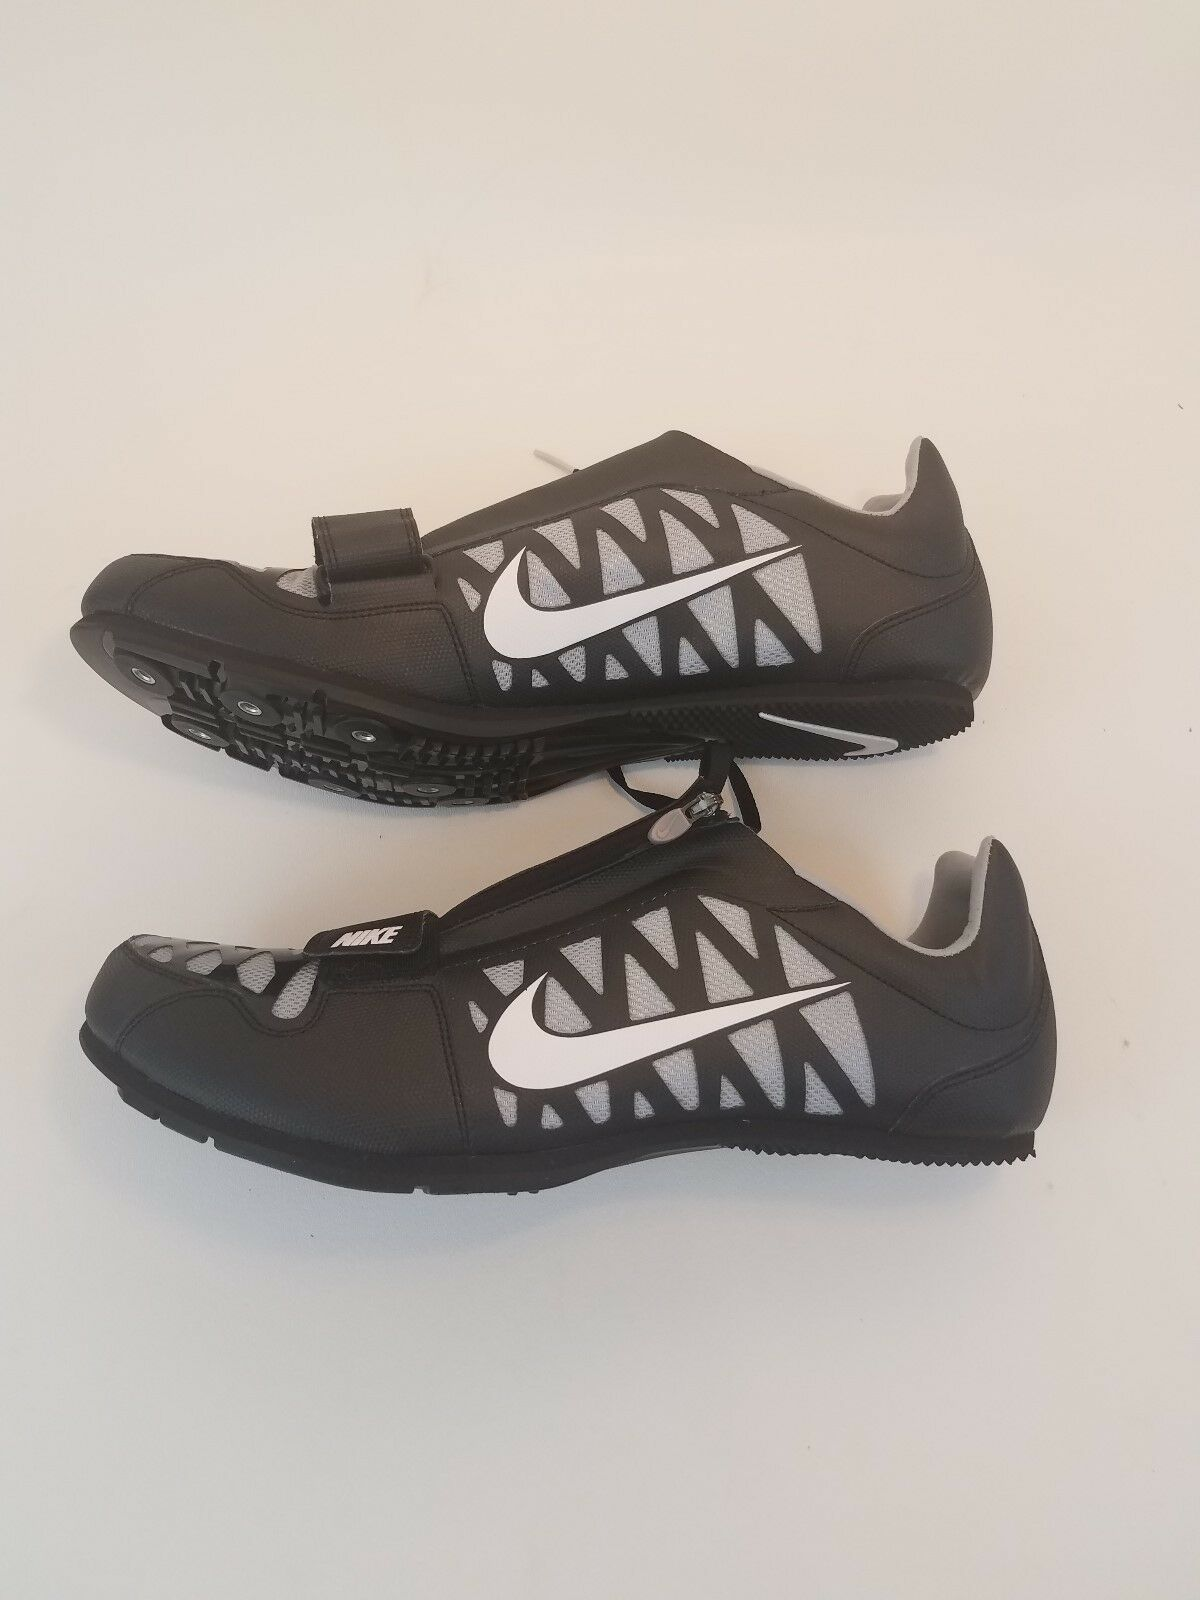 long jump nike zoom new size 14 mens black white and grey Seasonal price cuts, discount benefits